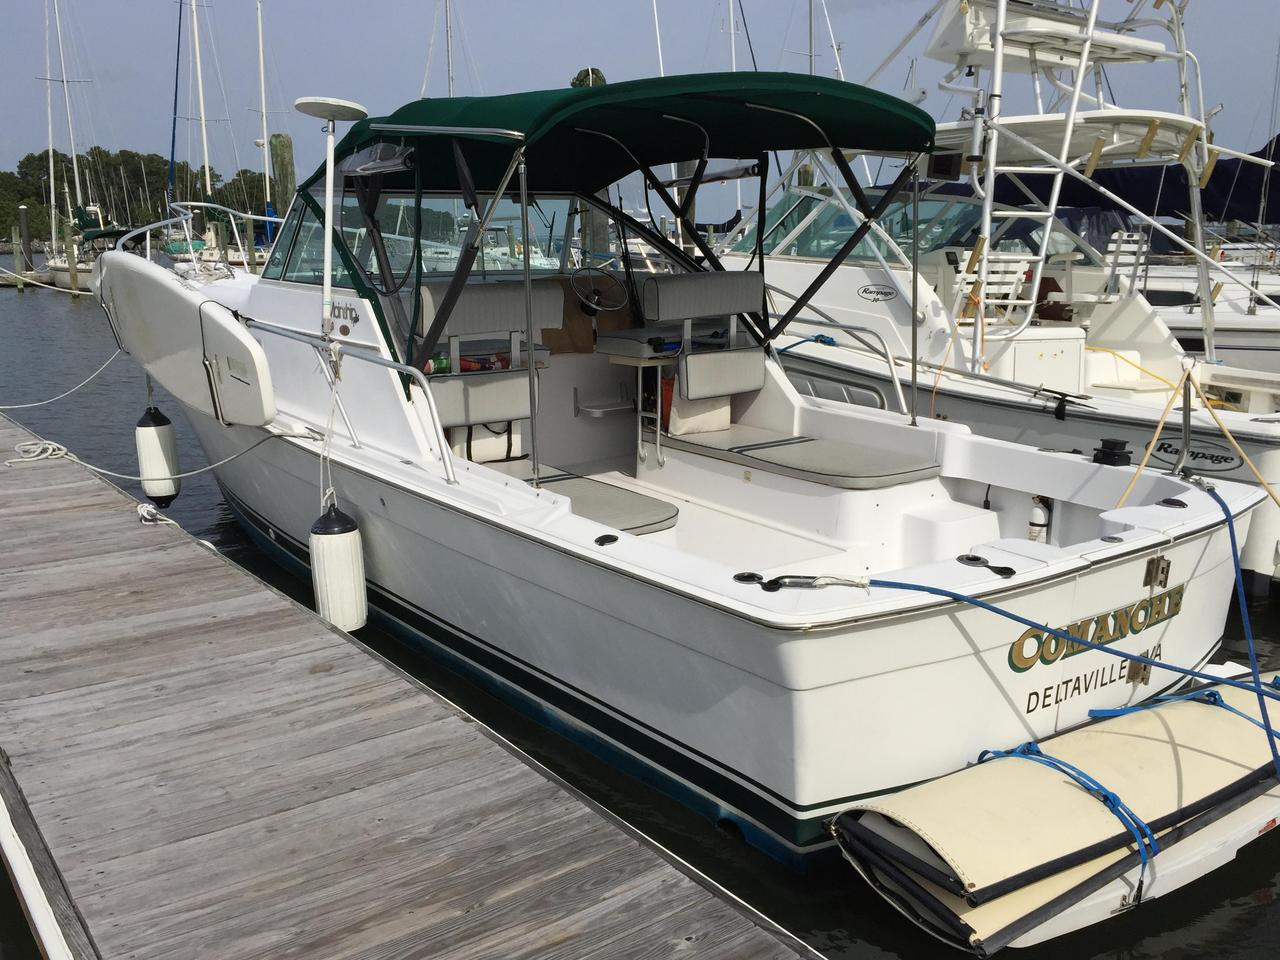 2000 Used Mainship Pilot 30 Cruiser Boat For Sale - $54,500